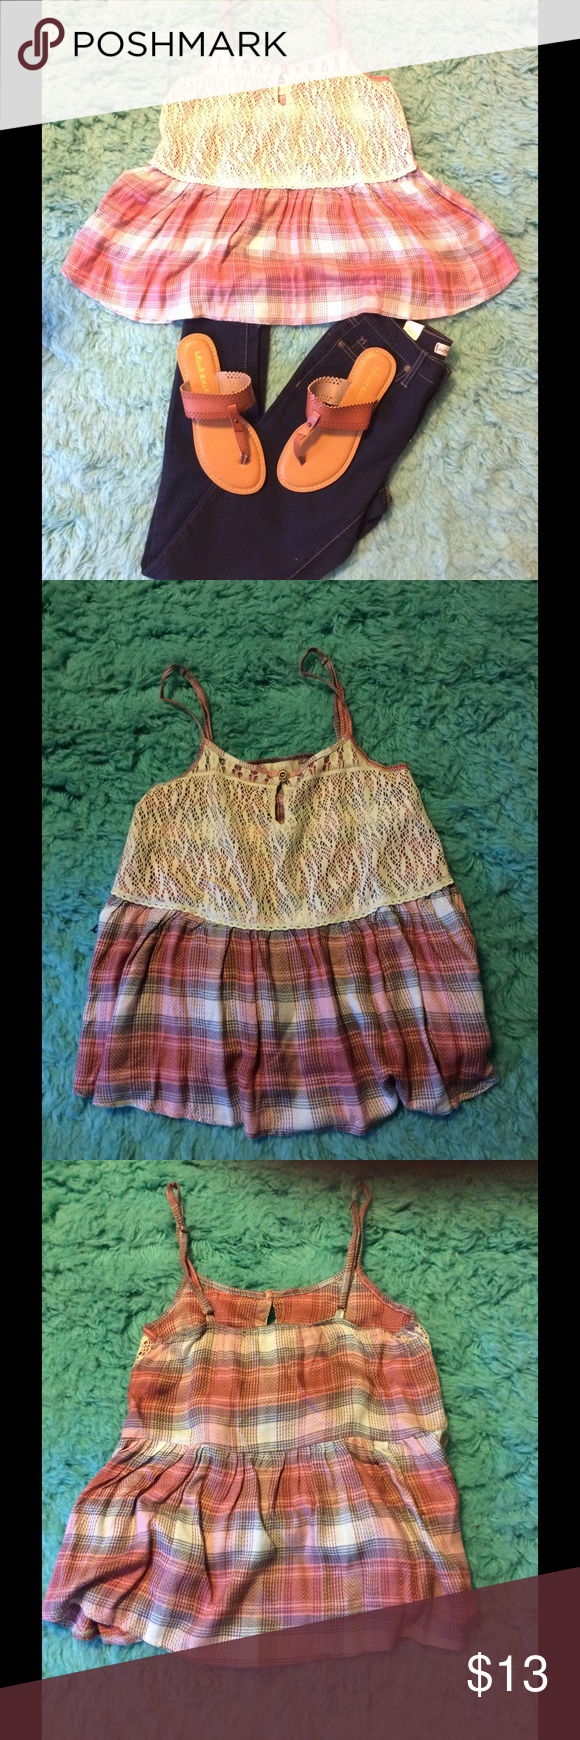 NWOT plaid top with lace detail .❤️❤️ Plaid top with adjustable straps. Love this top but does run small. Altar'd State Tops Blouses